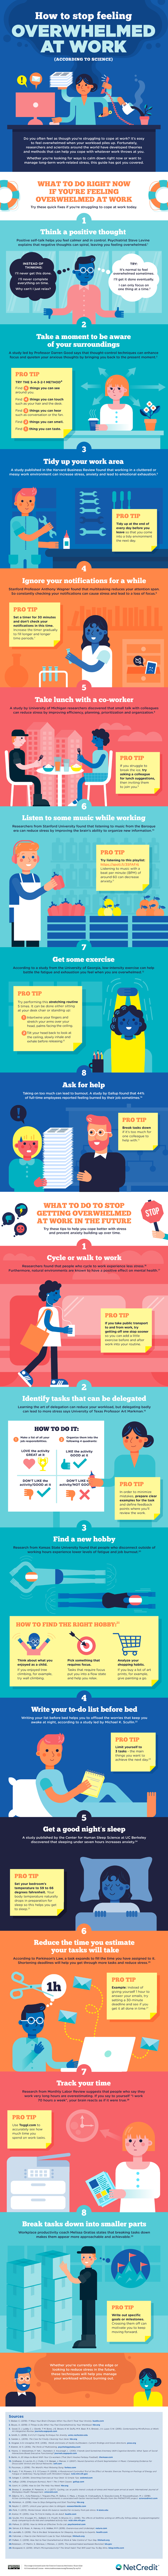 Stress techniques infographic to stop feeling overwhelmed